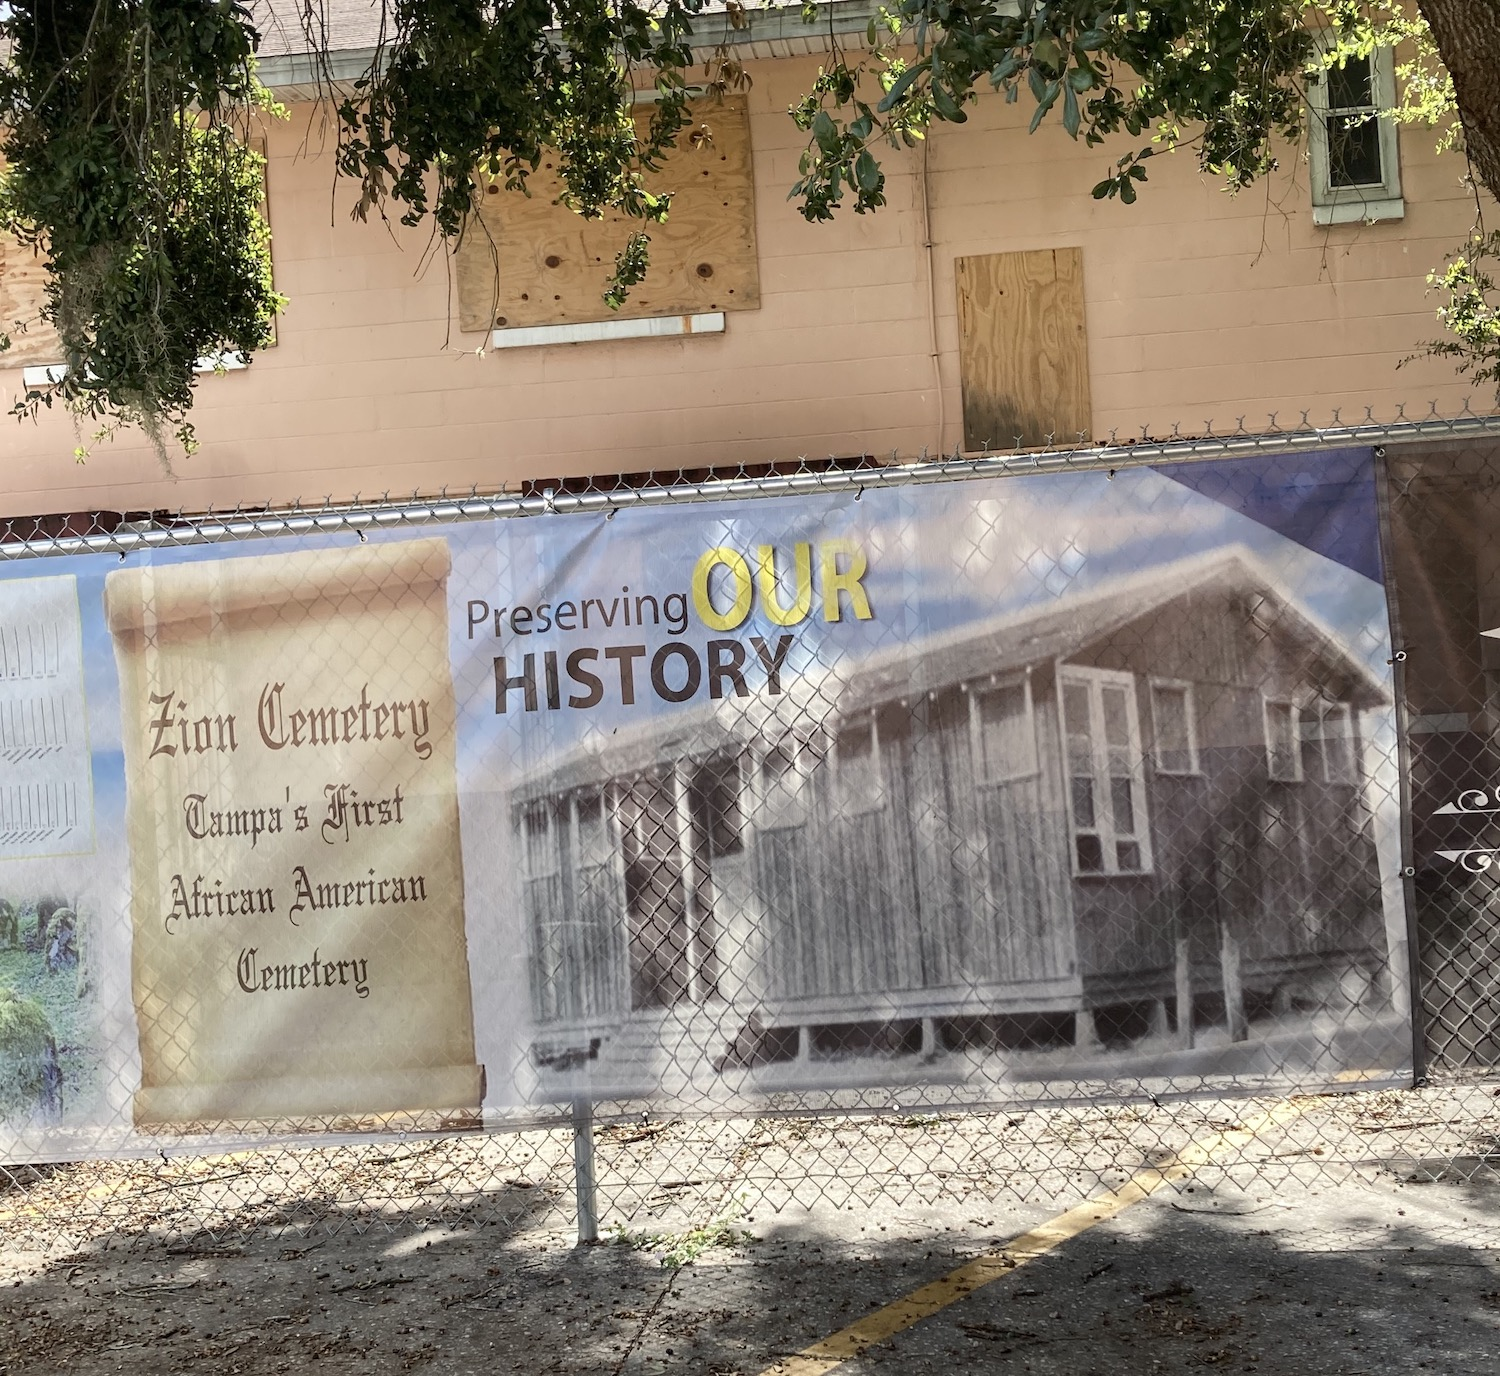 The research team's focus will center on Zion Cemetery, one of the first African American cemeteries in Tampa Bay, and St. Petersburg's Oaklawn Cemetery complex near Tropicana Field.